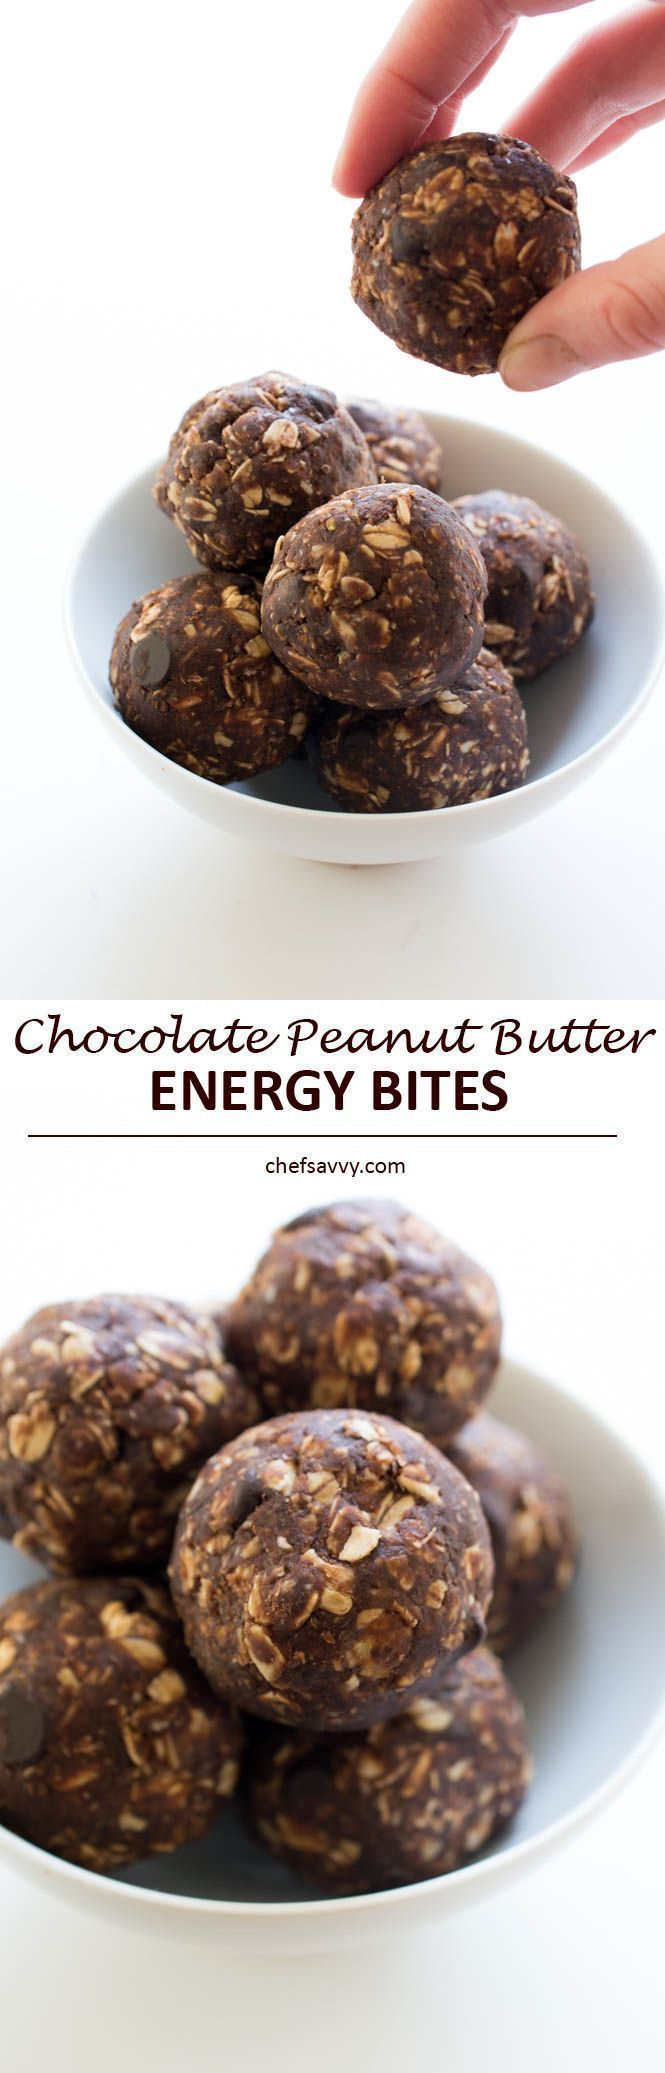 No Bake Chocolate Peanut Butter Energy Bites. Loaded with old fashioned oats, peanut butter, protein powder and flax seed. A healthy on the go protein packed snack! | chefsavvy.com #recipe #chocolate #peanut #butter #energy #bites #dessert